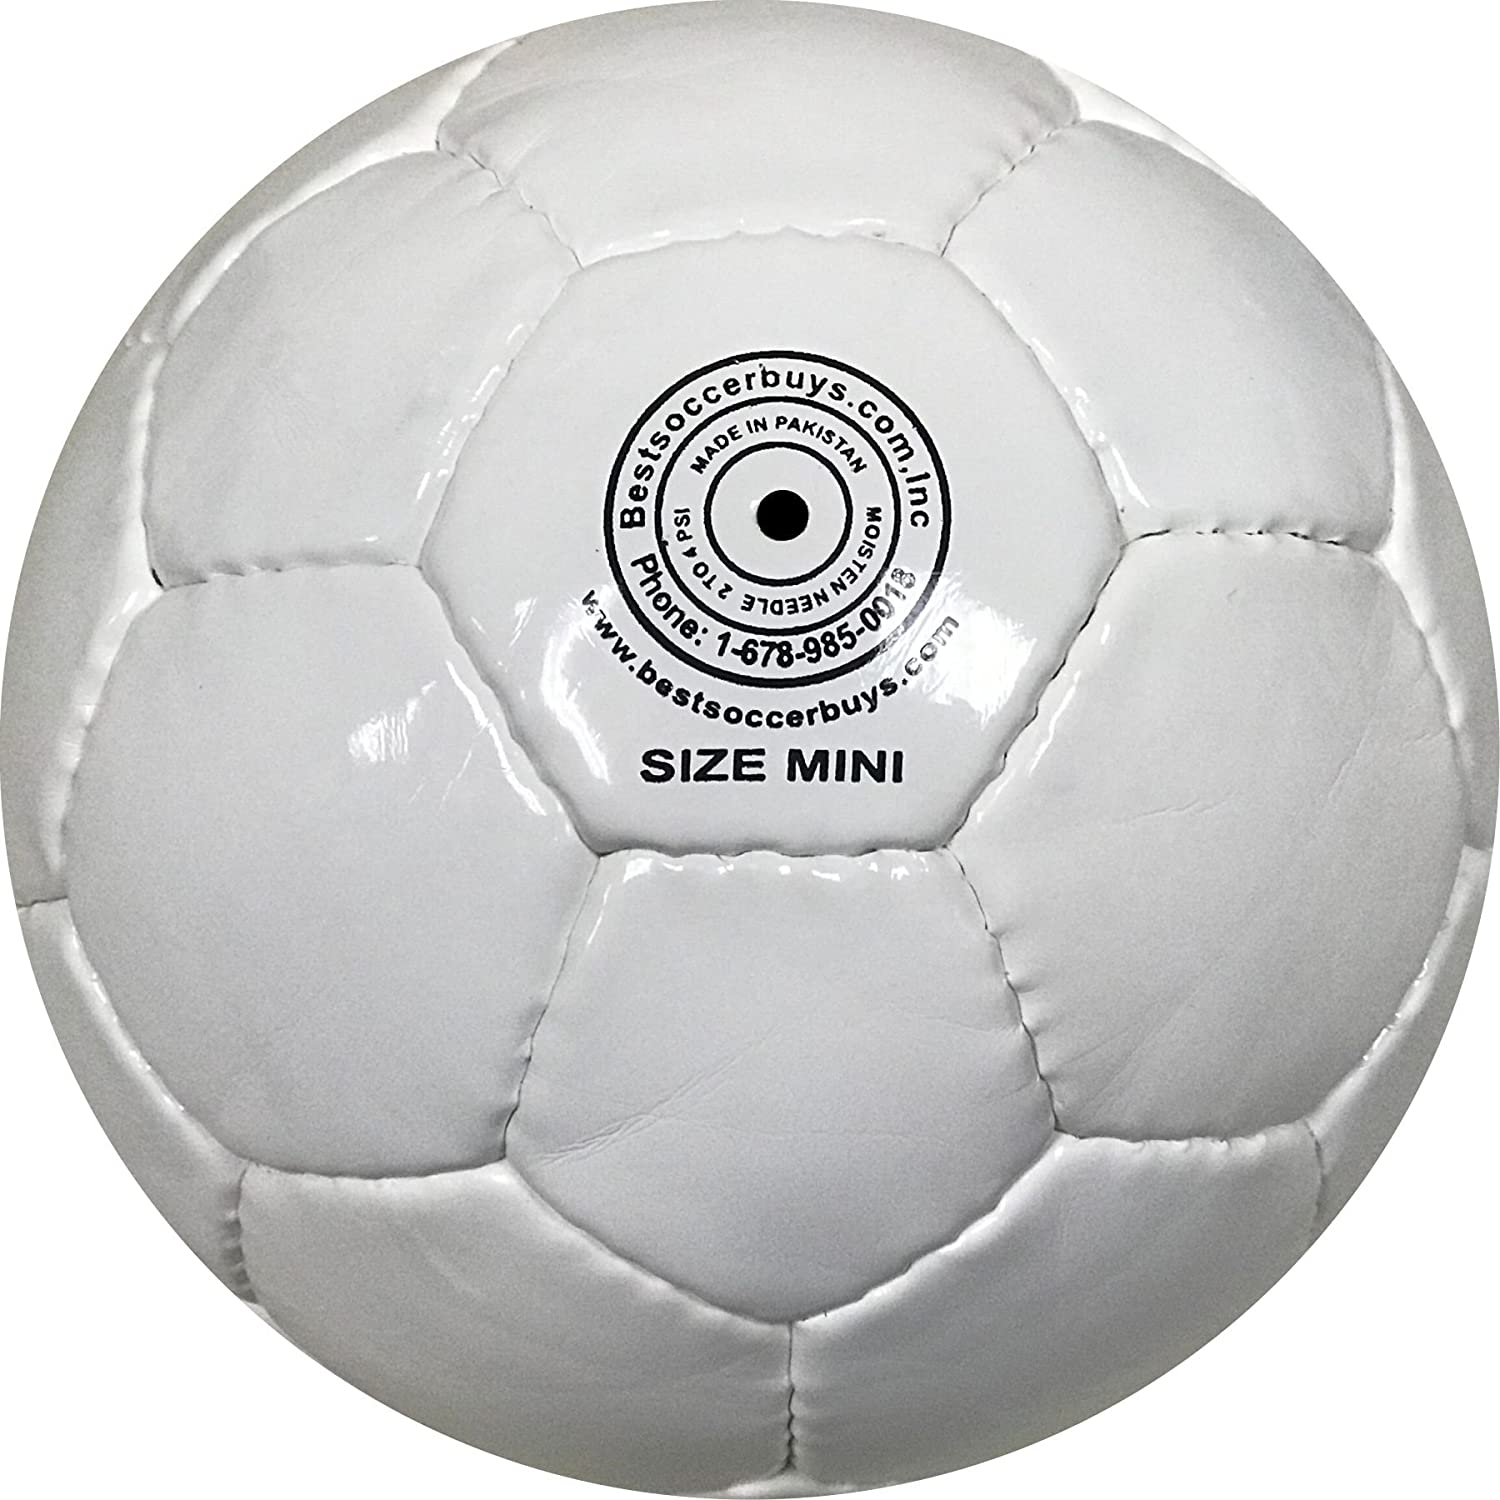 48 cm Circumference White Mini Soccer Balls Six Pack Size 1 for Practice and Kids